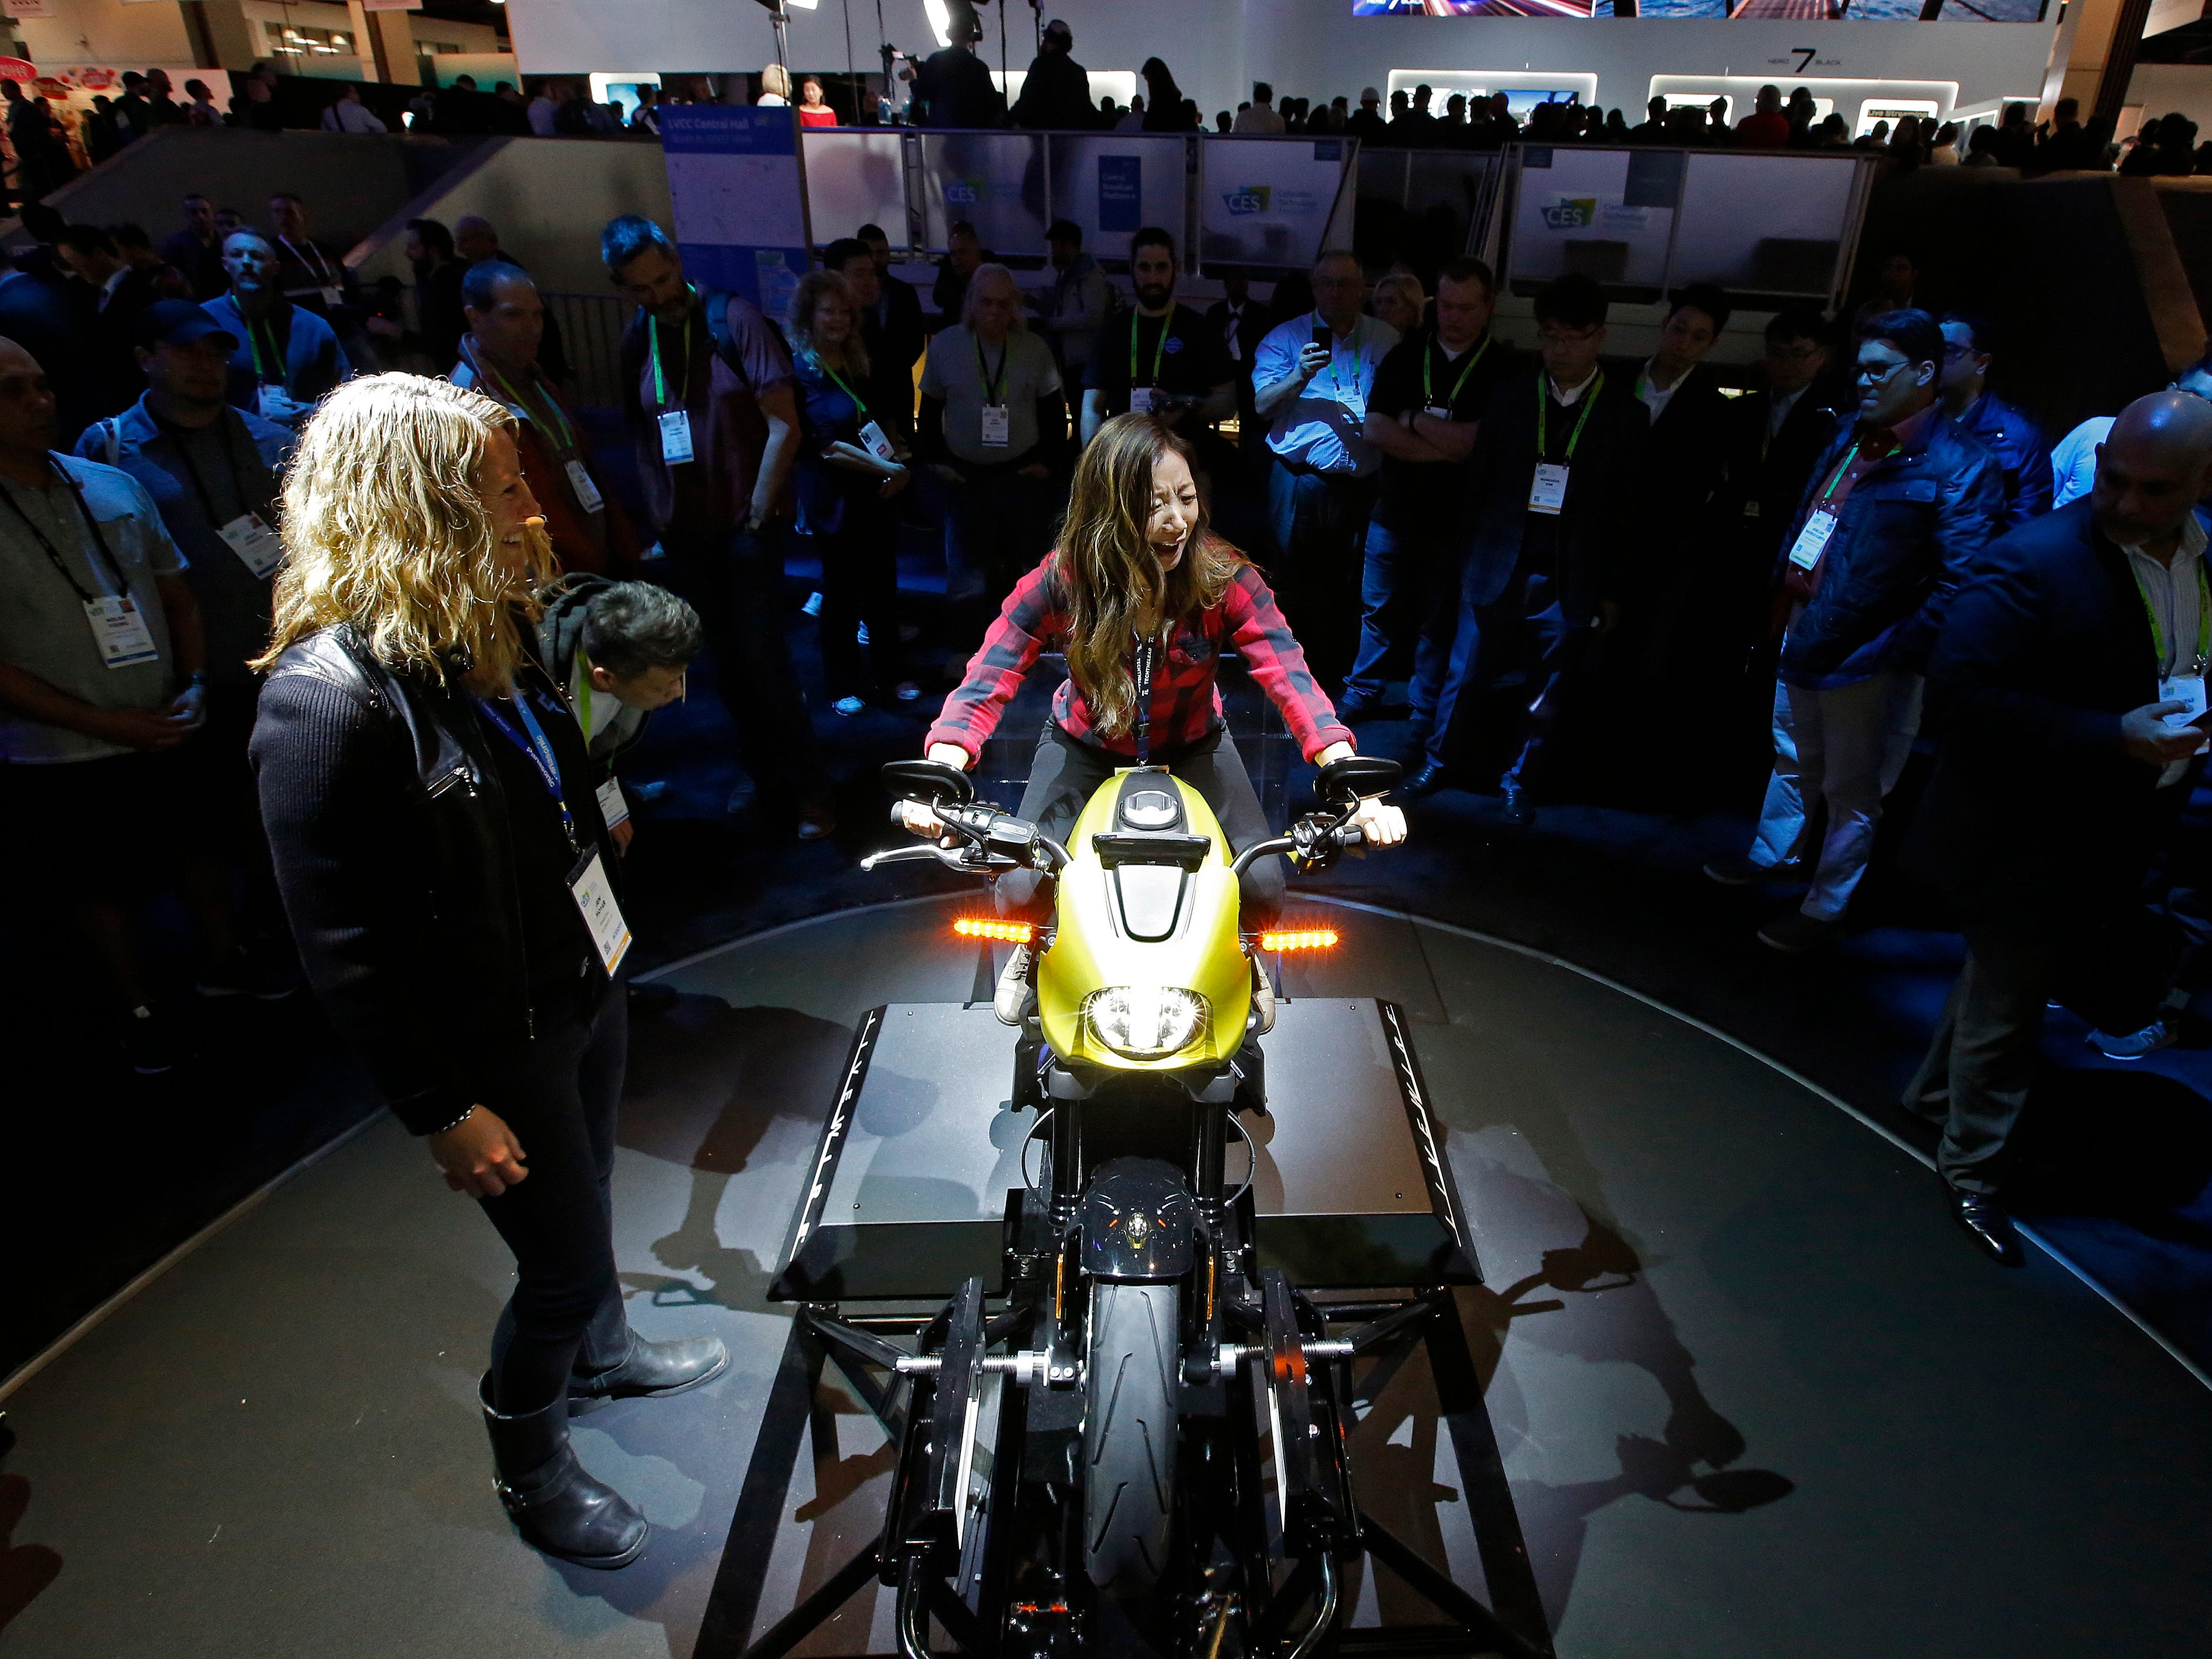 People view the new all-electric Harley Davidson.